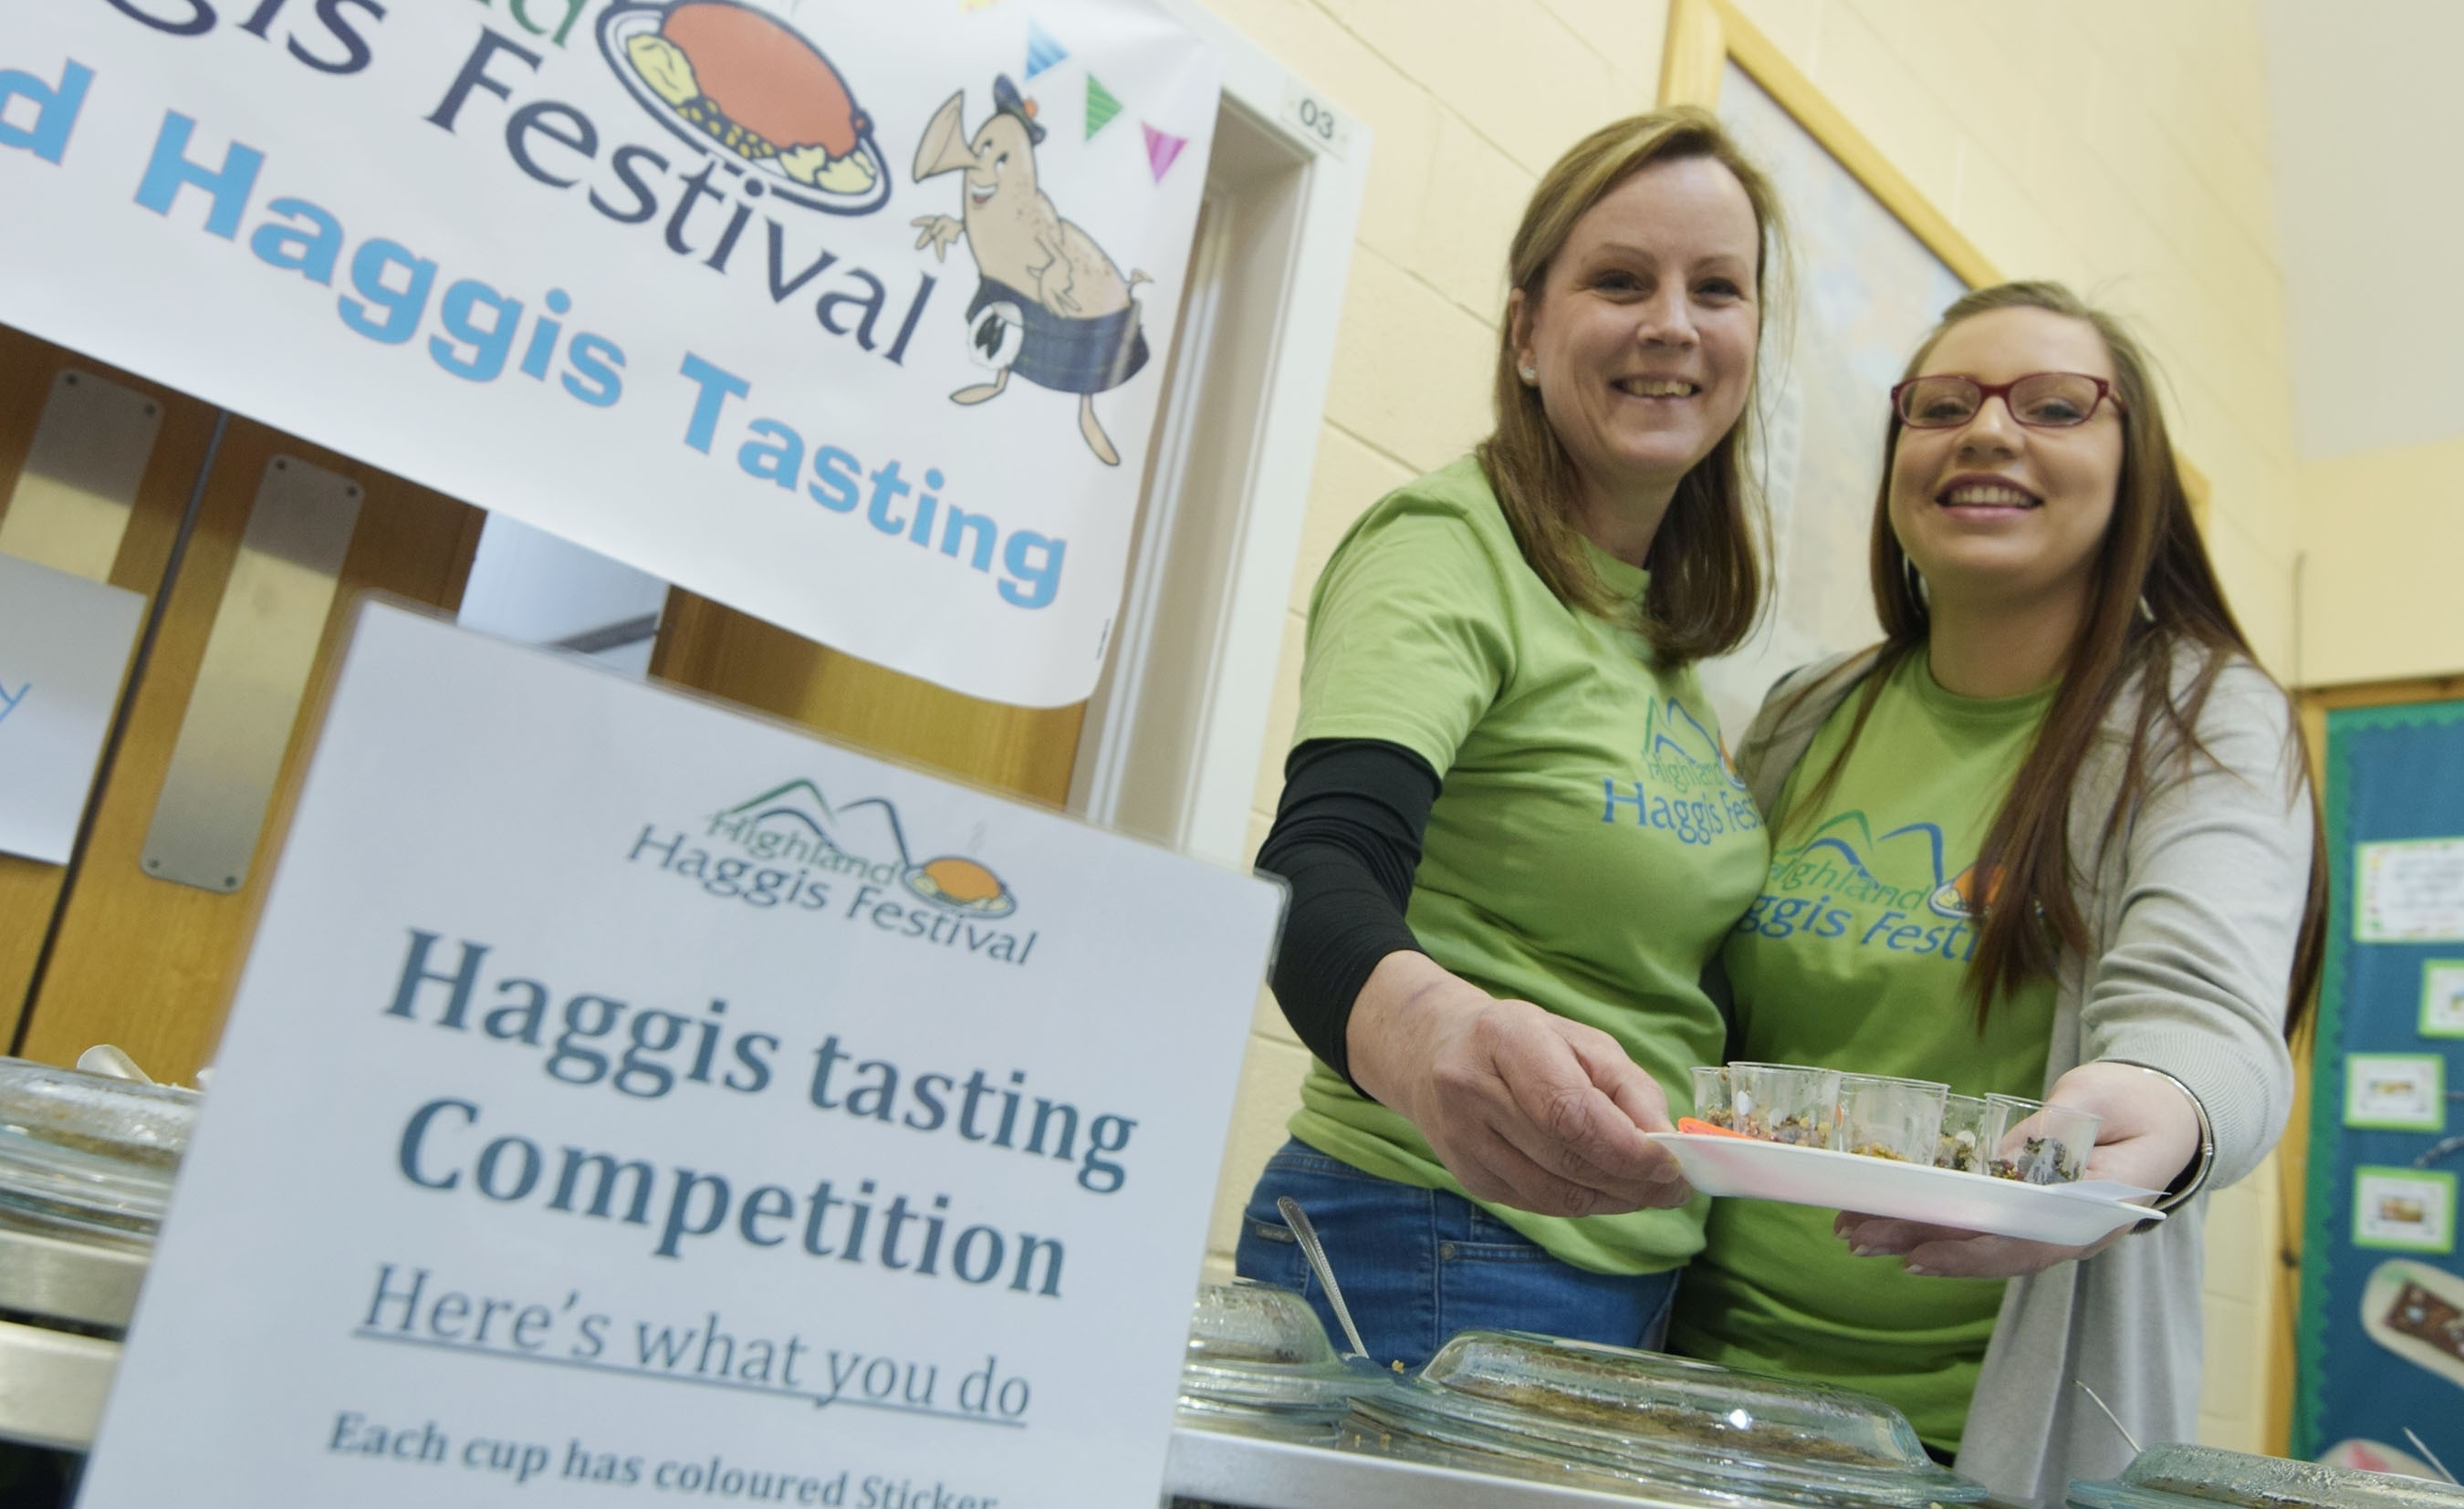 Spoilt for choice as 'Haggis Girls' Fiona MacKenzie (left) and Morgan MacDonald offer six haggis recipes to sample and vote on.